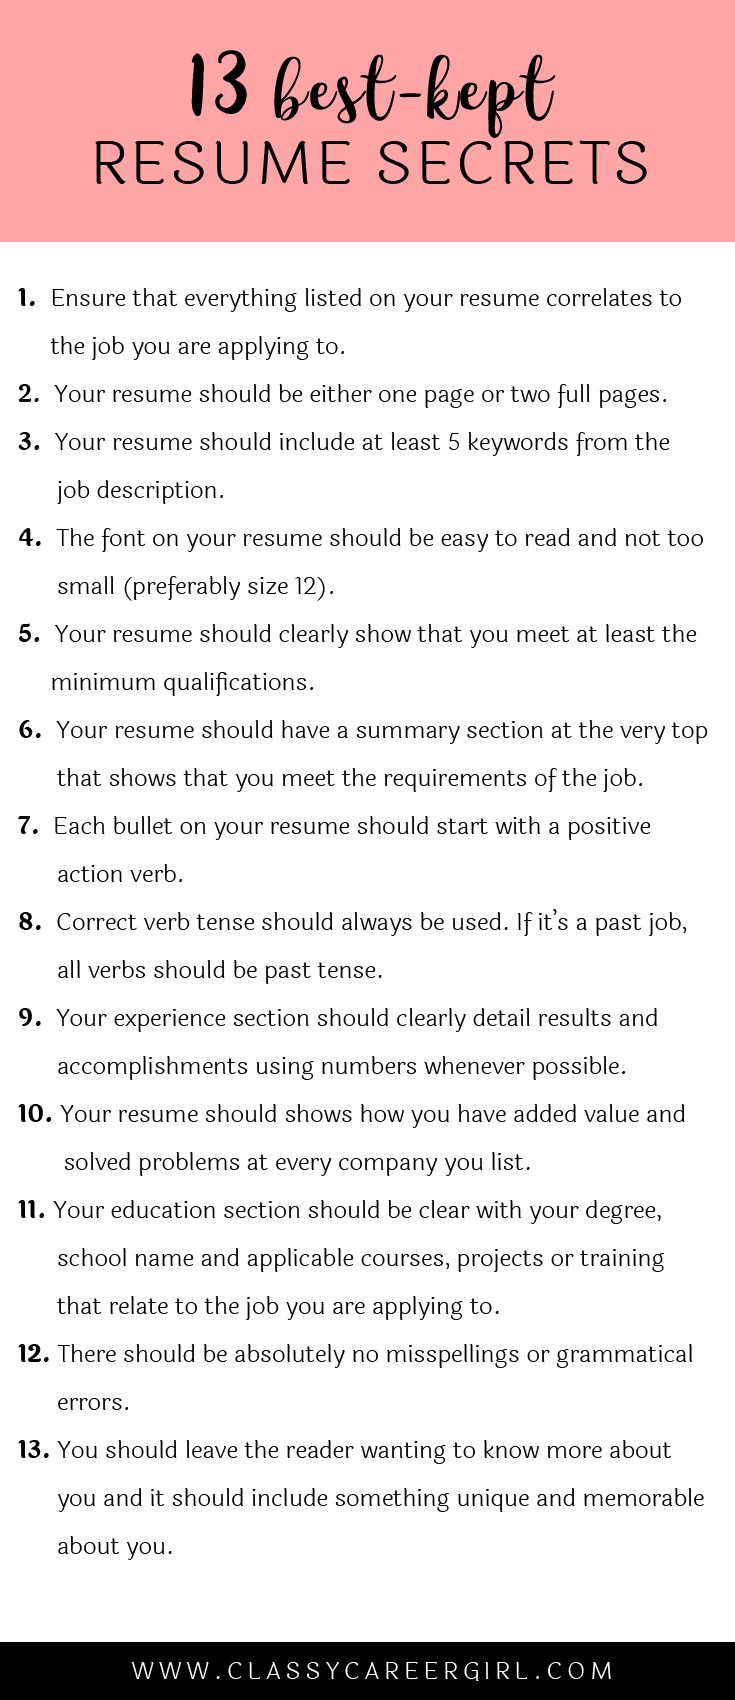 Opposenewapstandardsus  Unique  Ideas About Resume On Pinterest  Cv Format Resume  With Marvelous Some Hiring Managers Will Toss Your Resume Out If You Dont Know These  With Extraordinary Principal Resumes Also Chronological Resume Vs Functional Resume In Addition Cosmetologist Resume Examples And Resume For Manufacturing As Well As How To Beef Up A Resume Additionally Managers Resume From Pinterestcom With Opposenewapstandardsus  Marvelous  Ideas About Resume On Pinterest  Cv Format Resume  With Extraordinary Some Hiring Managers Will Toss Your Resume Out If You Dont Know These  And Unique Principal Resumes Also Chronological Resume Vs Functional Resume In Addition Cosmetologist Resume Examples From Pinterestcom